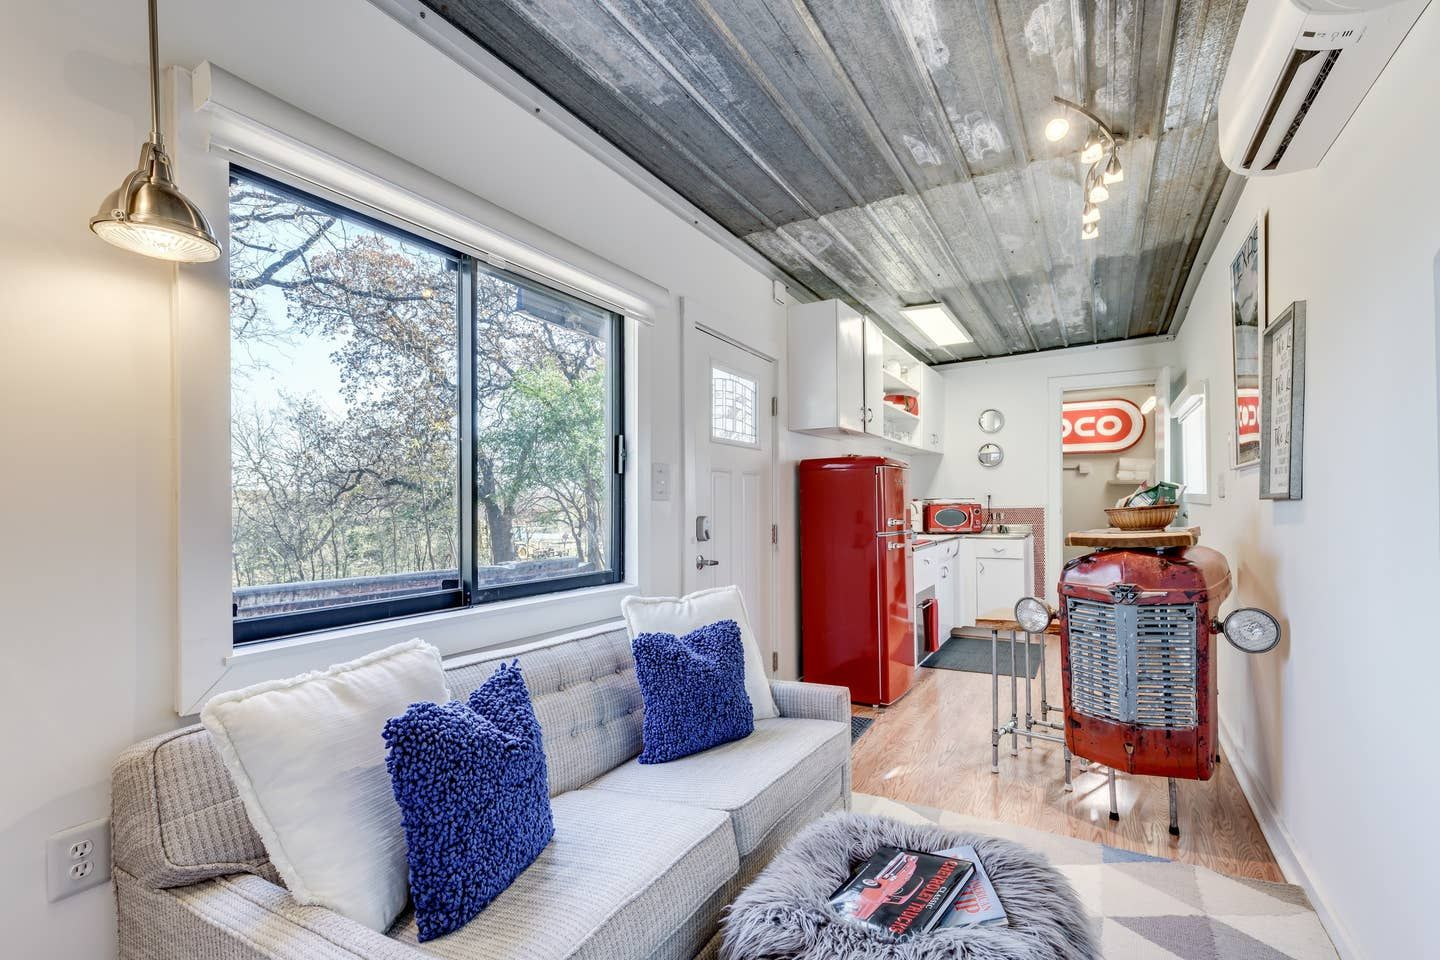 20 Coolest Airbnb Rentals To Check Out On Your Next